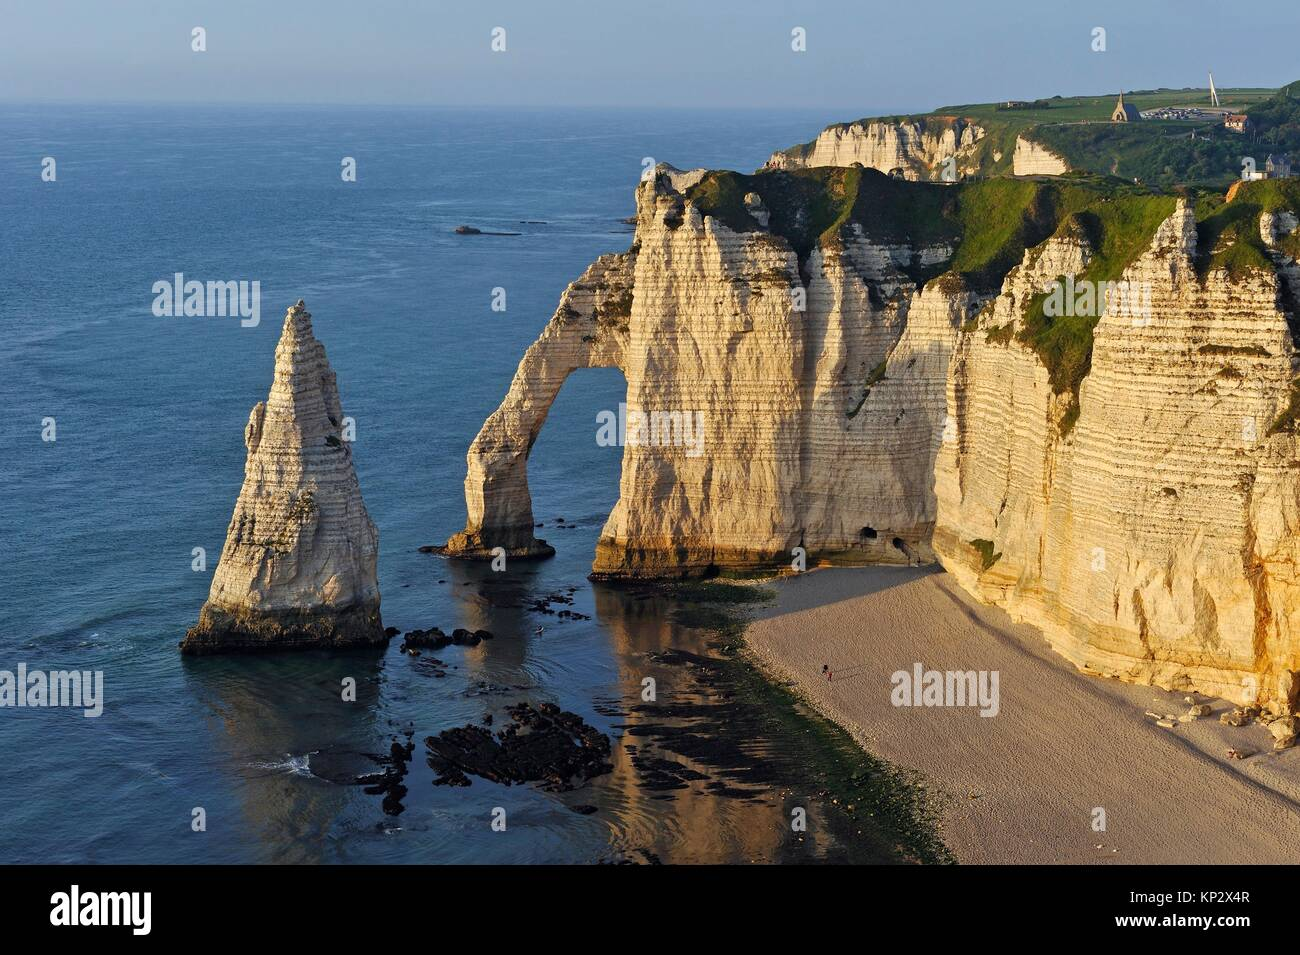 chalk cliffs with arch and ´´l´Aiguille´´ (the Needle), Etretat, Seine-Maritime department, Normandie region, France, Stock Photo